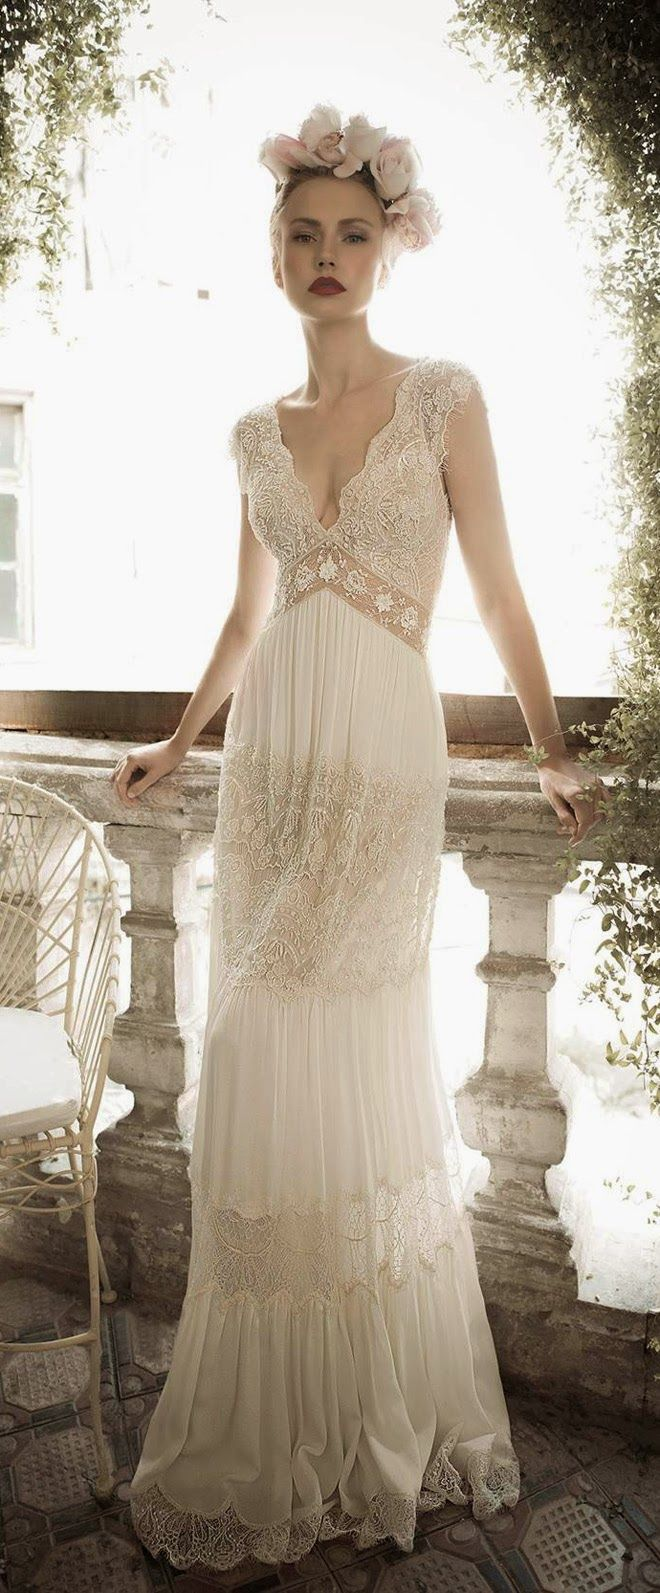 Lihi hod wedding dresses wedding dresses dresses